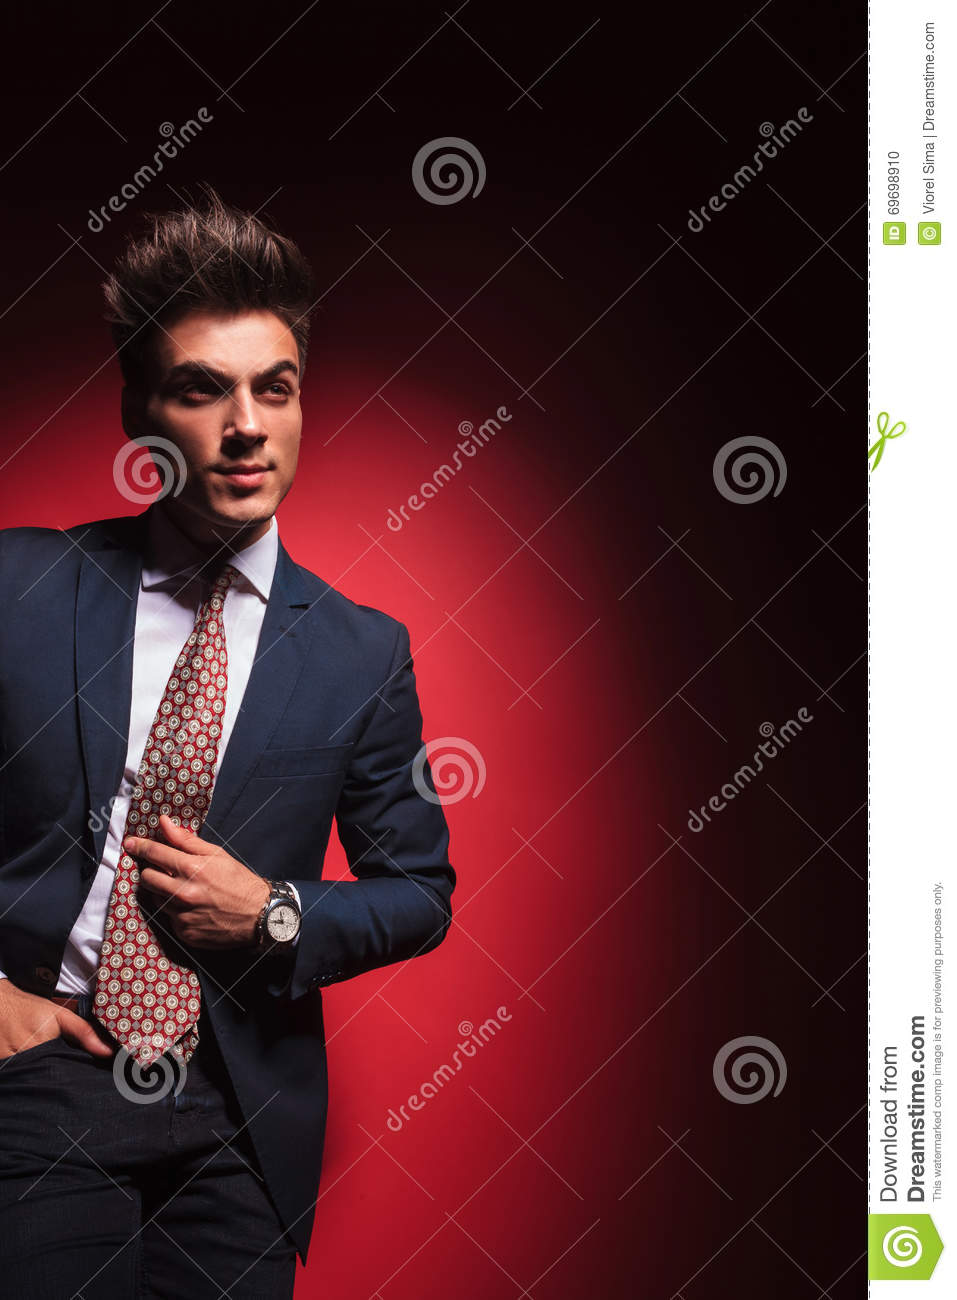 d98f3b9b6be0 Smart casual young businessmanwith red tie posing standing in red studio  background . with hand in pocket fixing his tie while looking away from the  camera